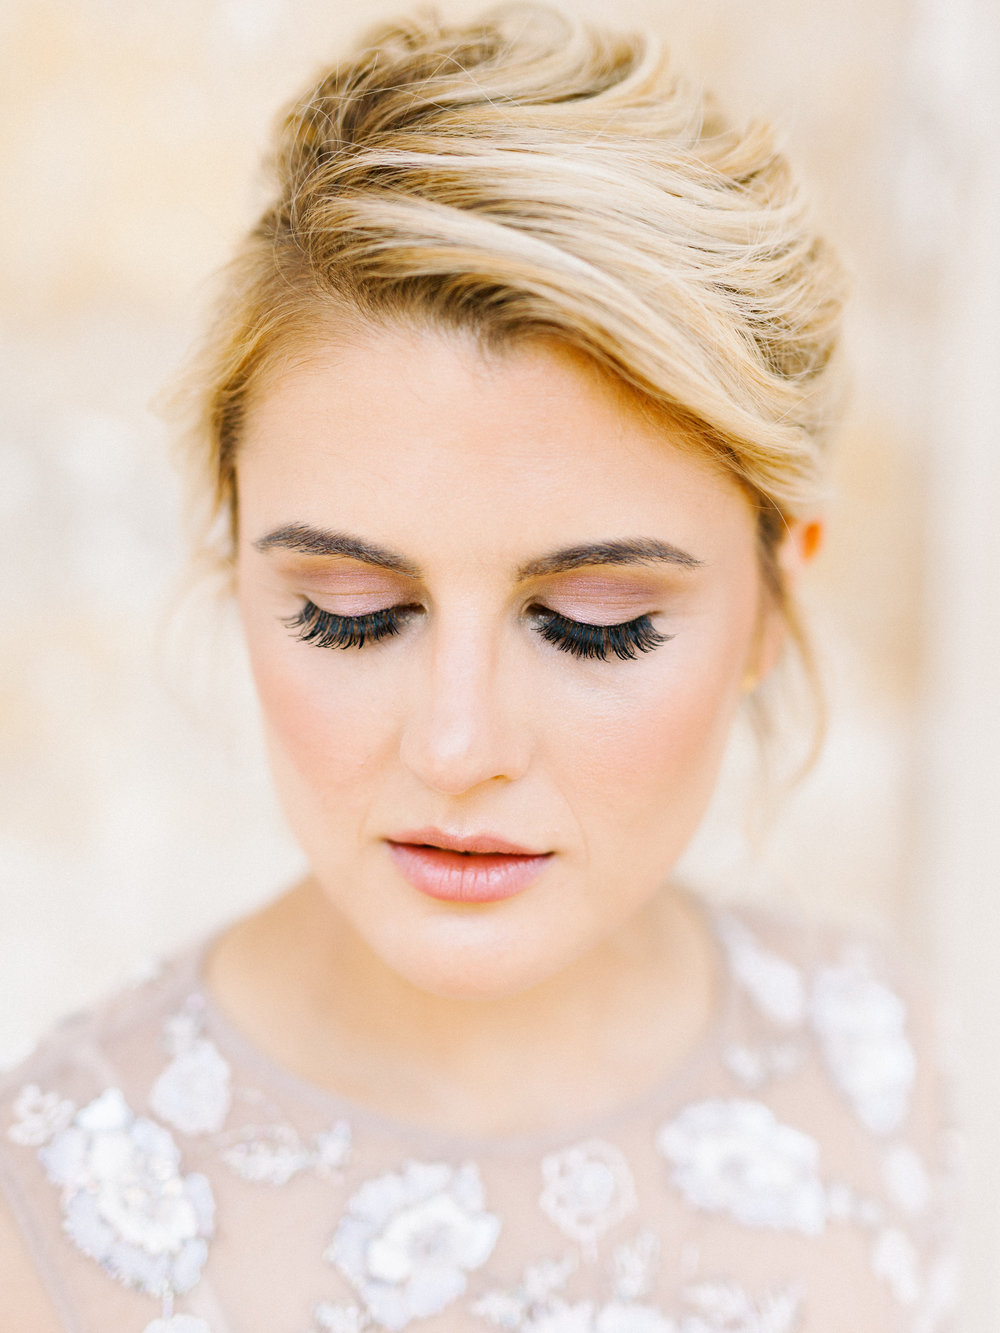 Emily looked so pretty with her natural glam makeup look from Shimmer and Spice for our whimsical elopement wedding inspiration shoot at the Woodlands Mansion in Philadelphia.